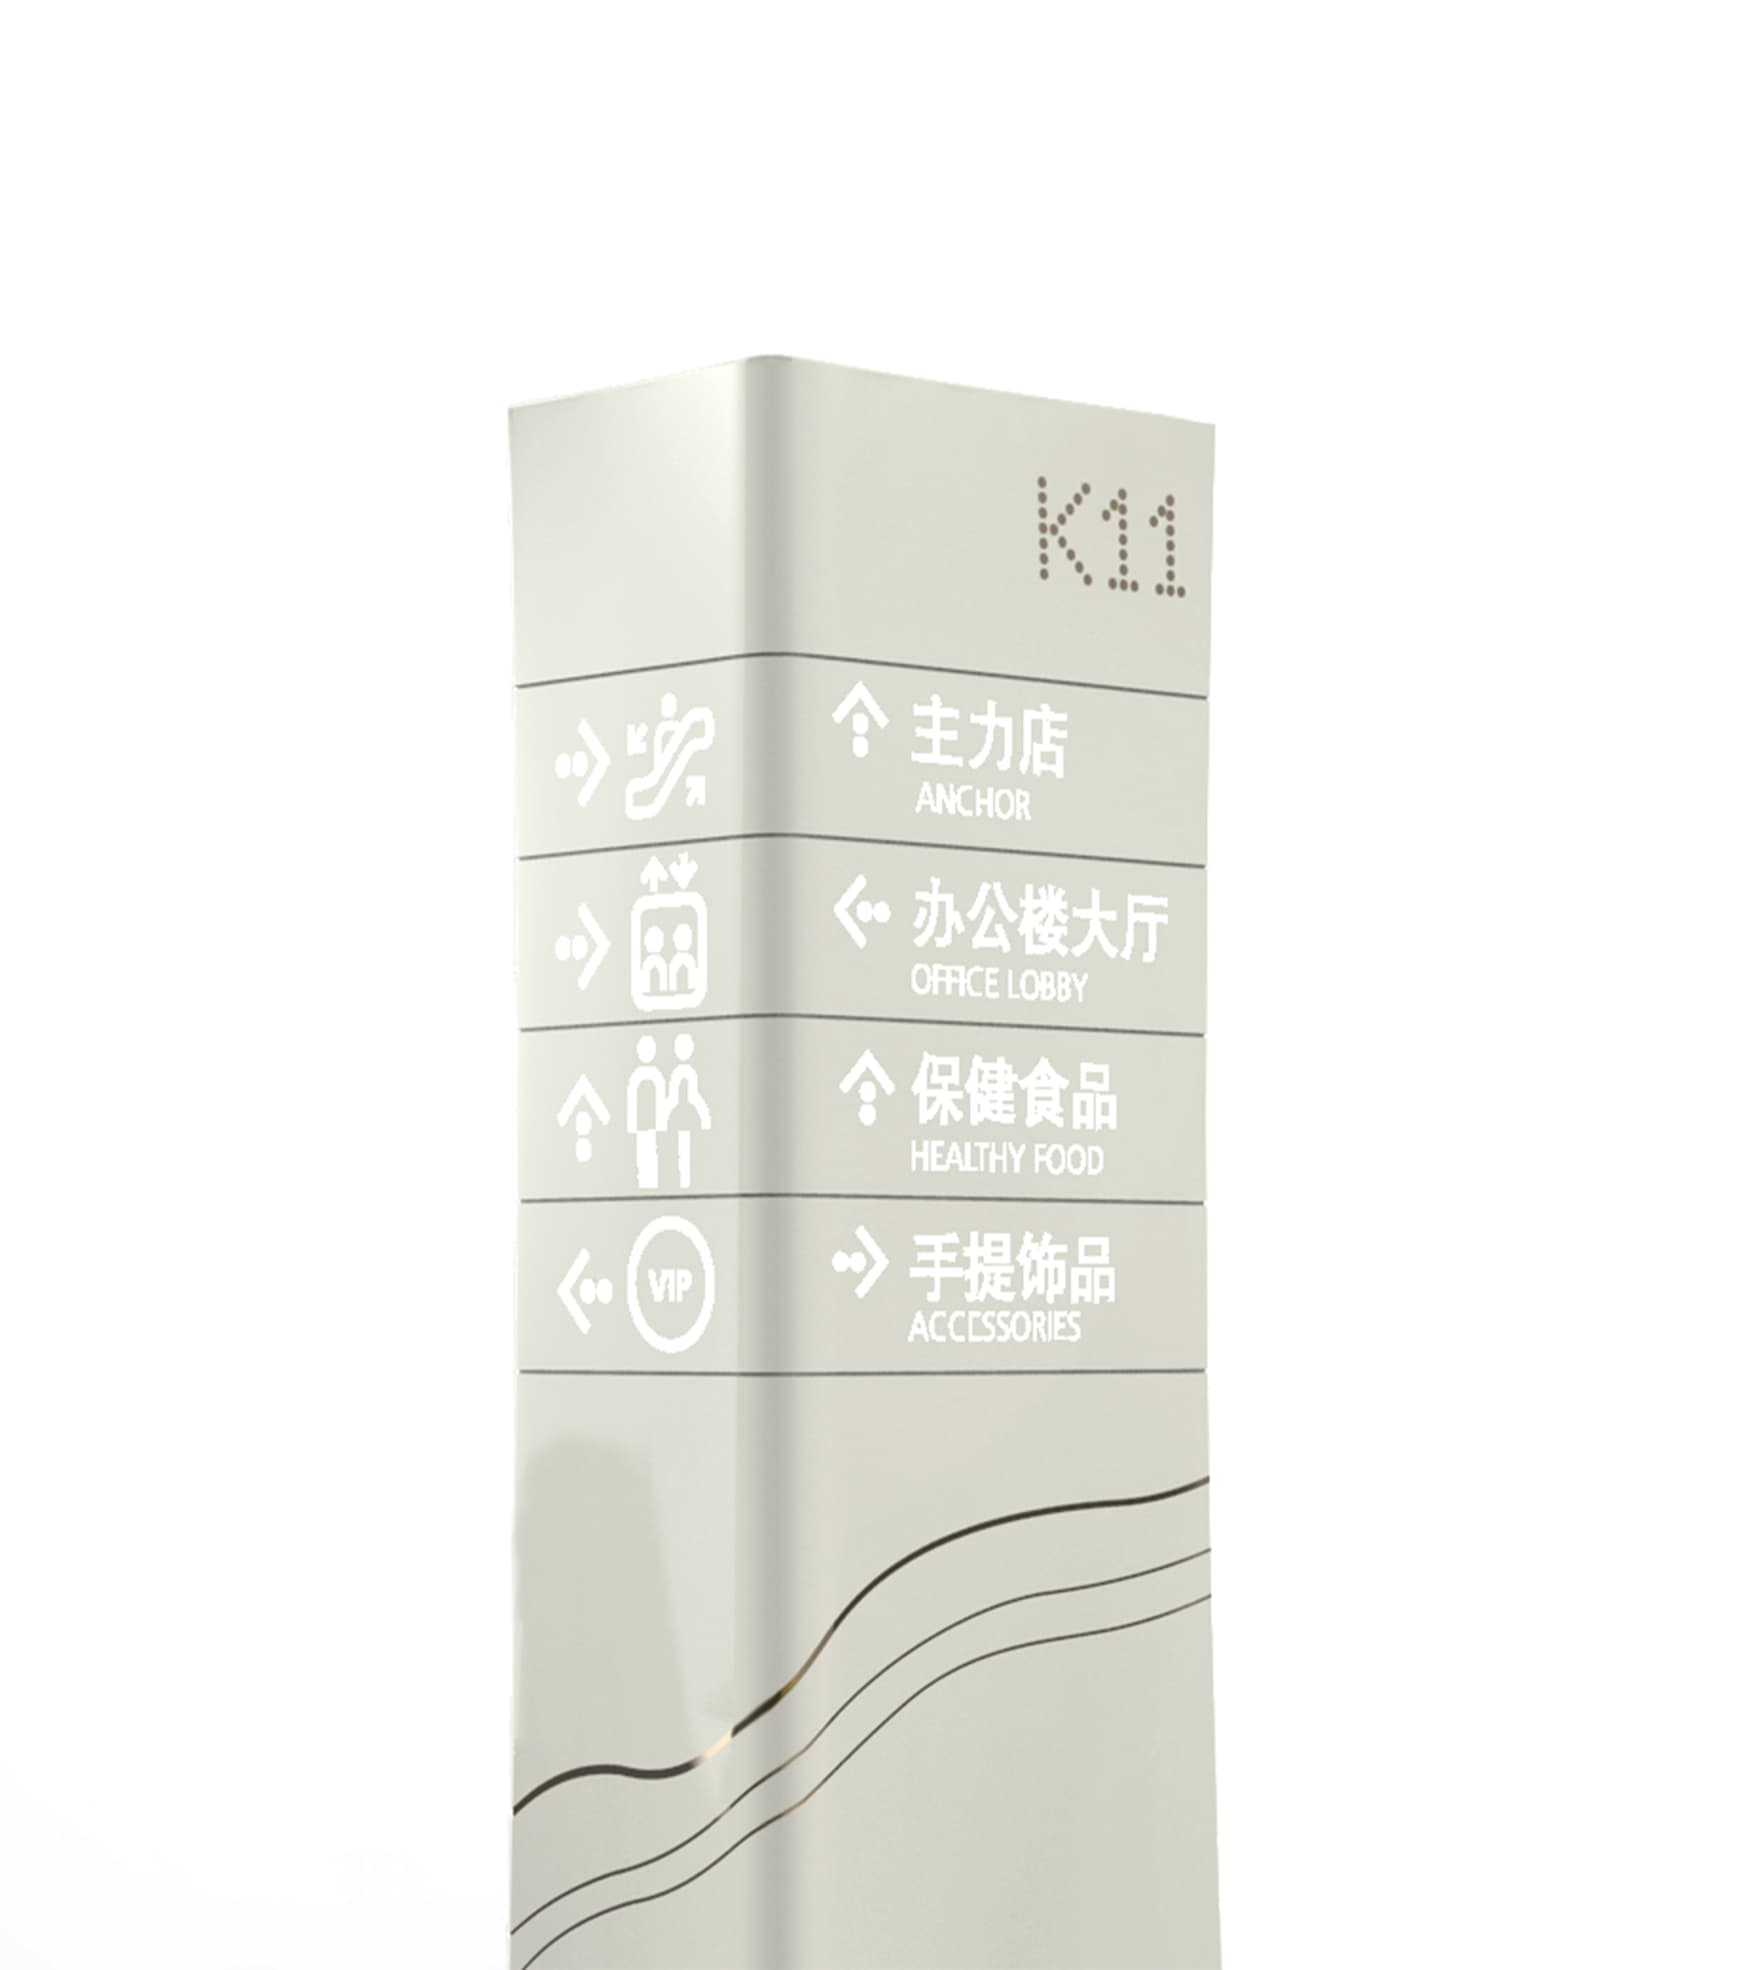 RSM Design created a beautiful pedestrian wayfinding system for K11, located in Tianjin, China, is a super high-rise complex development